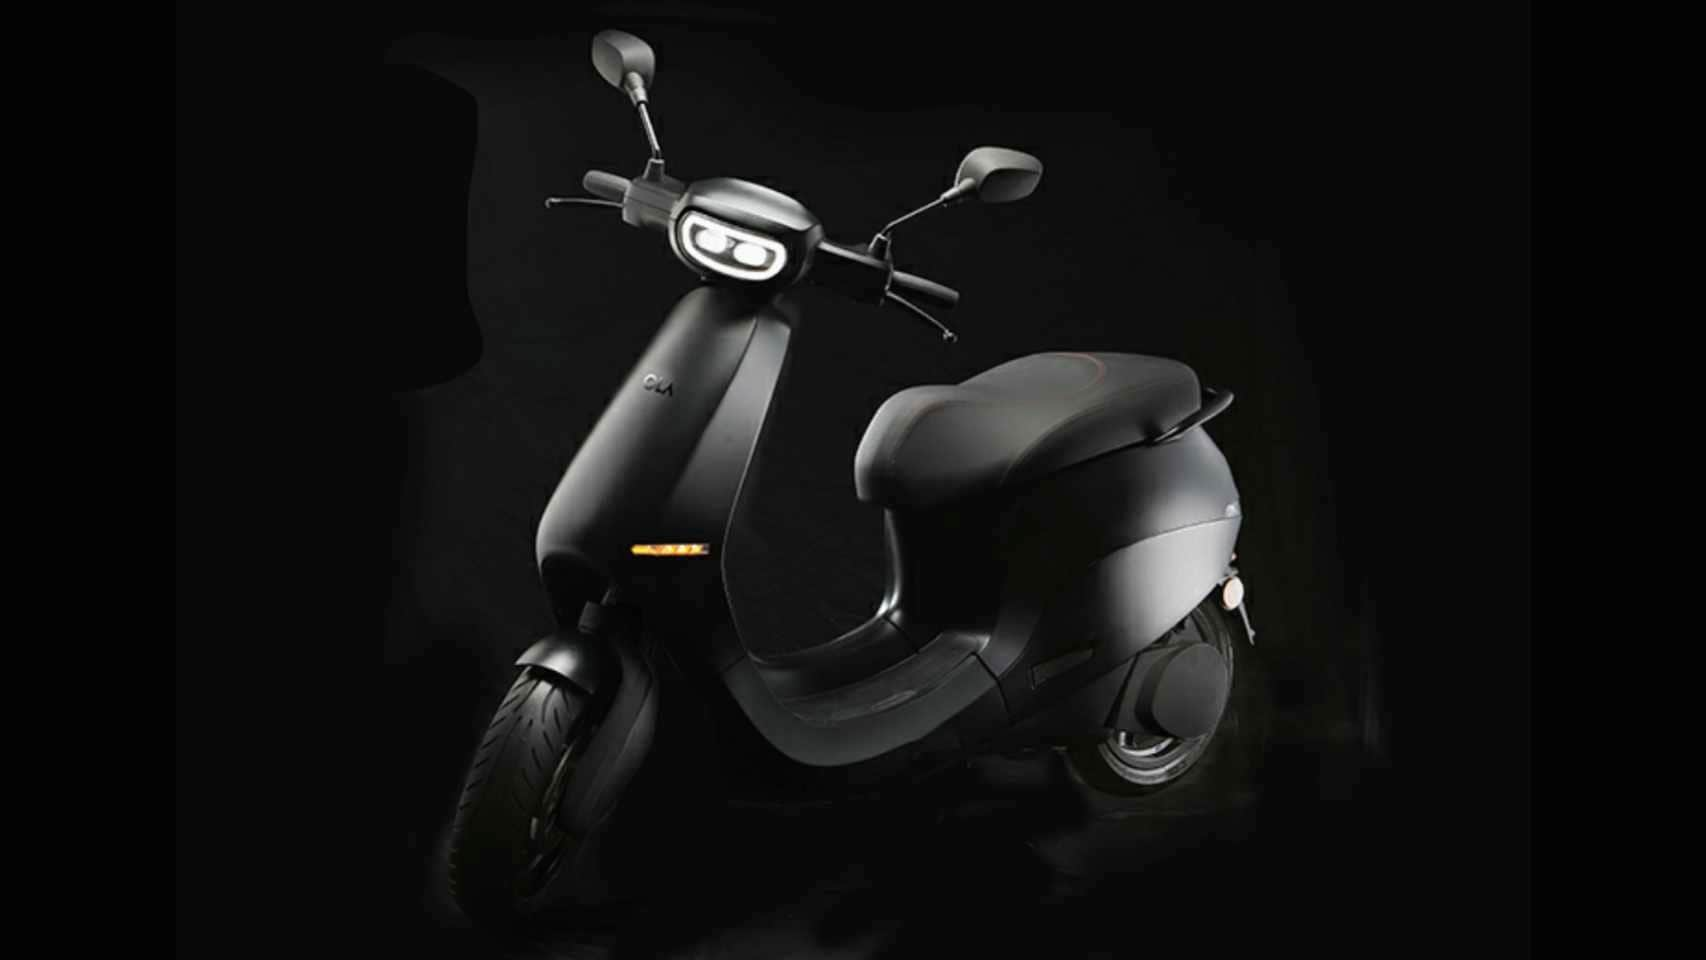 The Ola electric scooter's motor is expected to produce over 8 hp and up to 50 Nm of torque. Image: Ola Electric